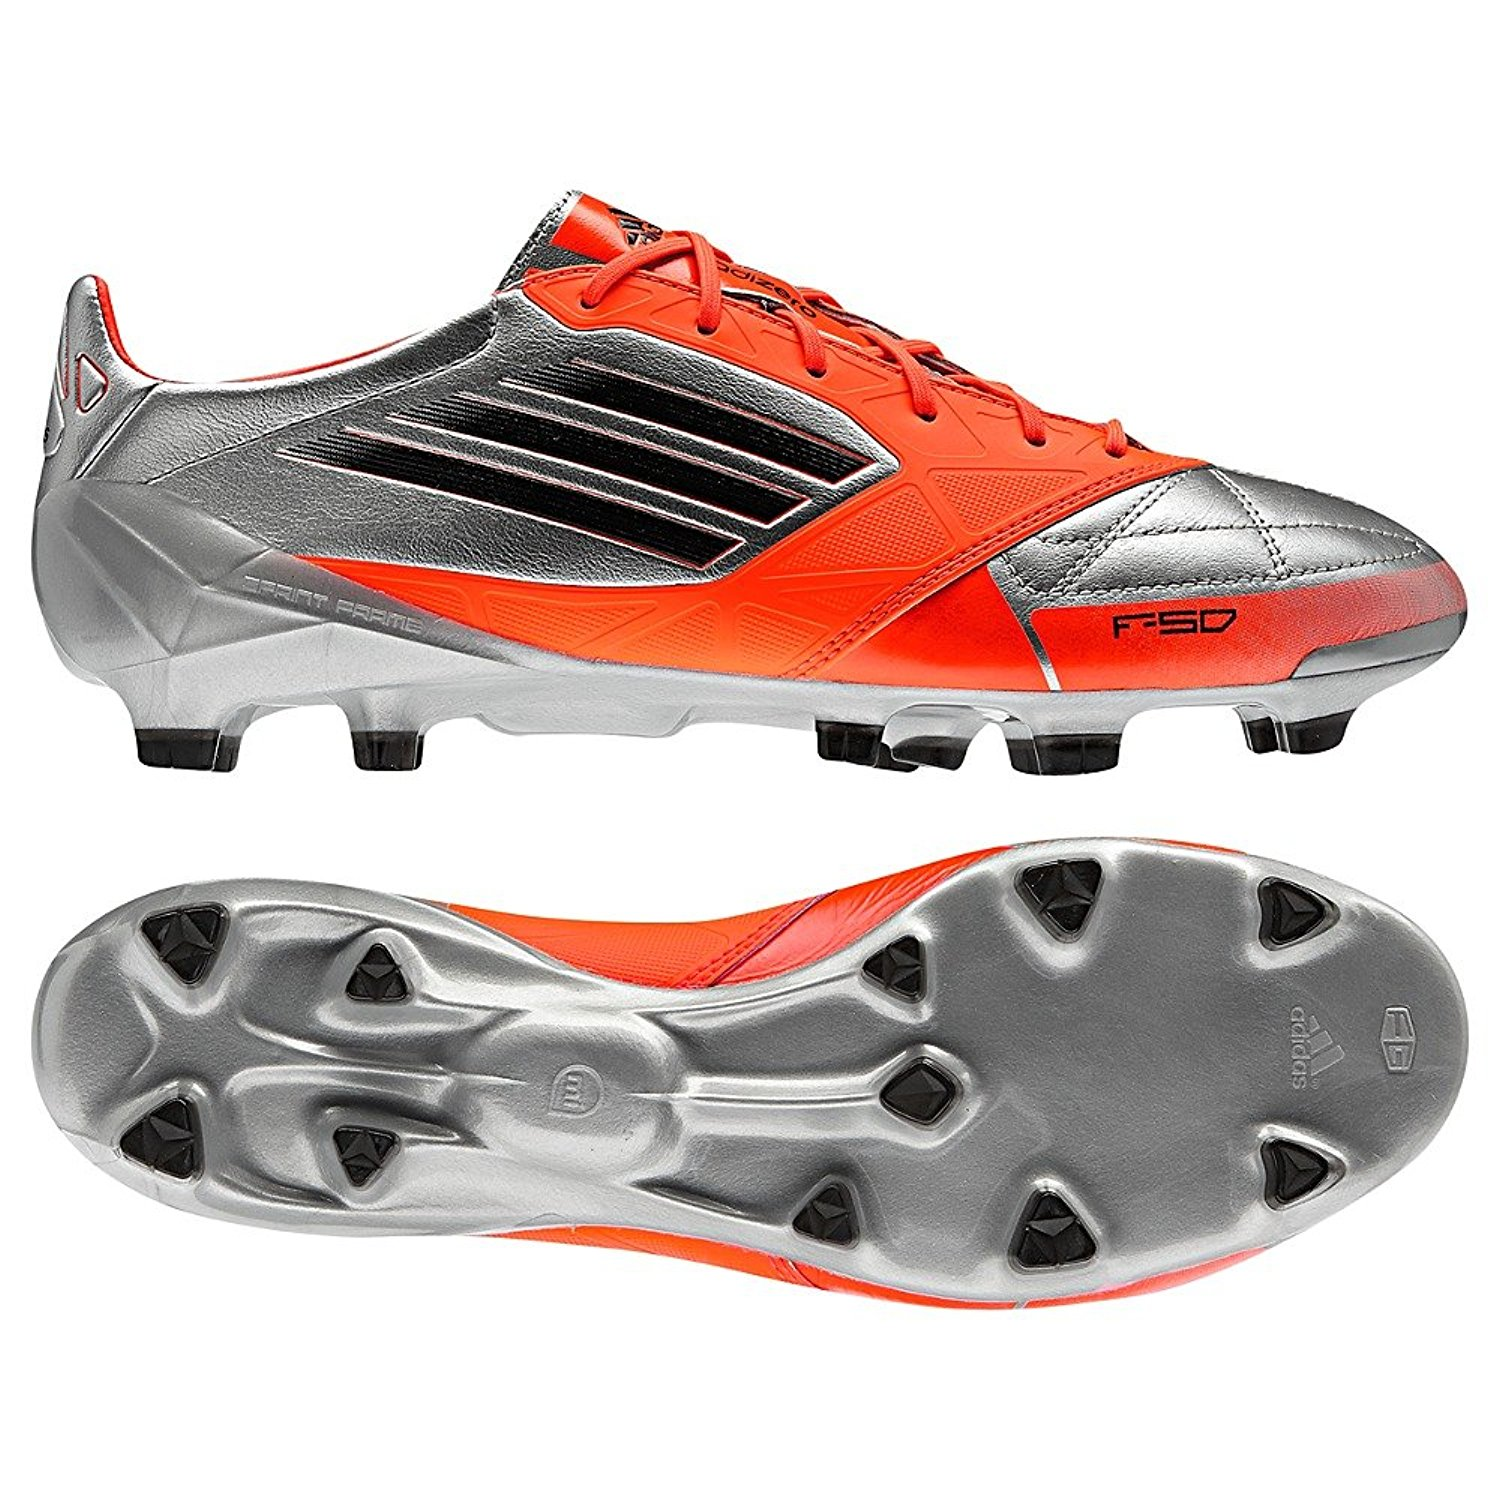 Get Quotations · F50 adizero TRX FG Leather Size 7.5 1903f2d5de48c